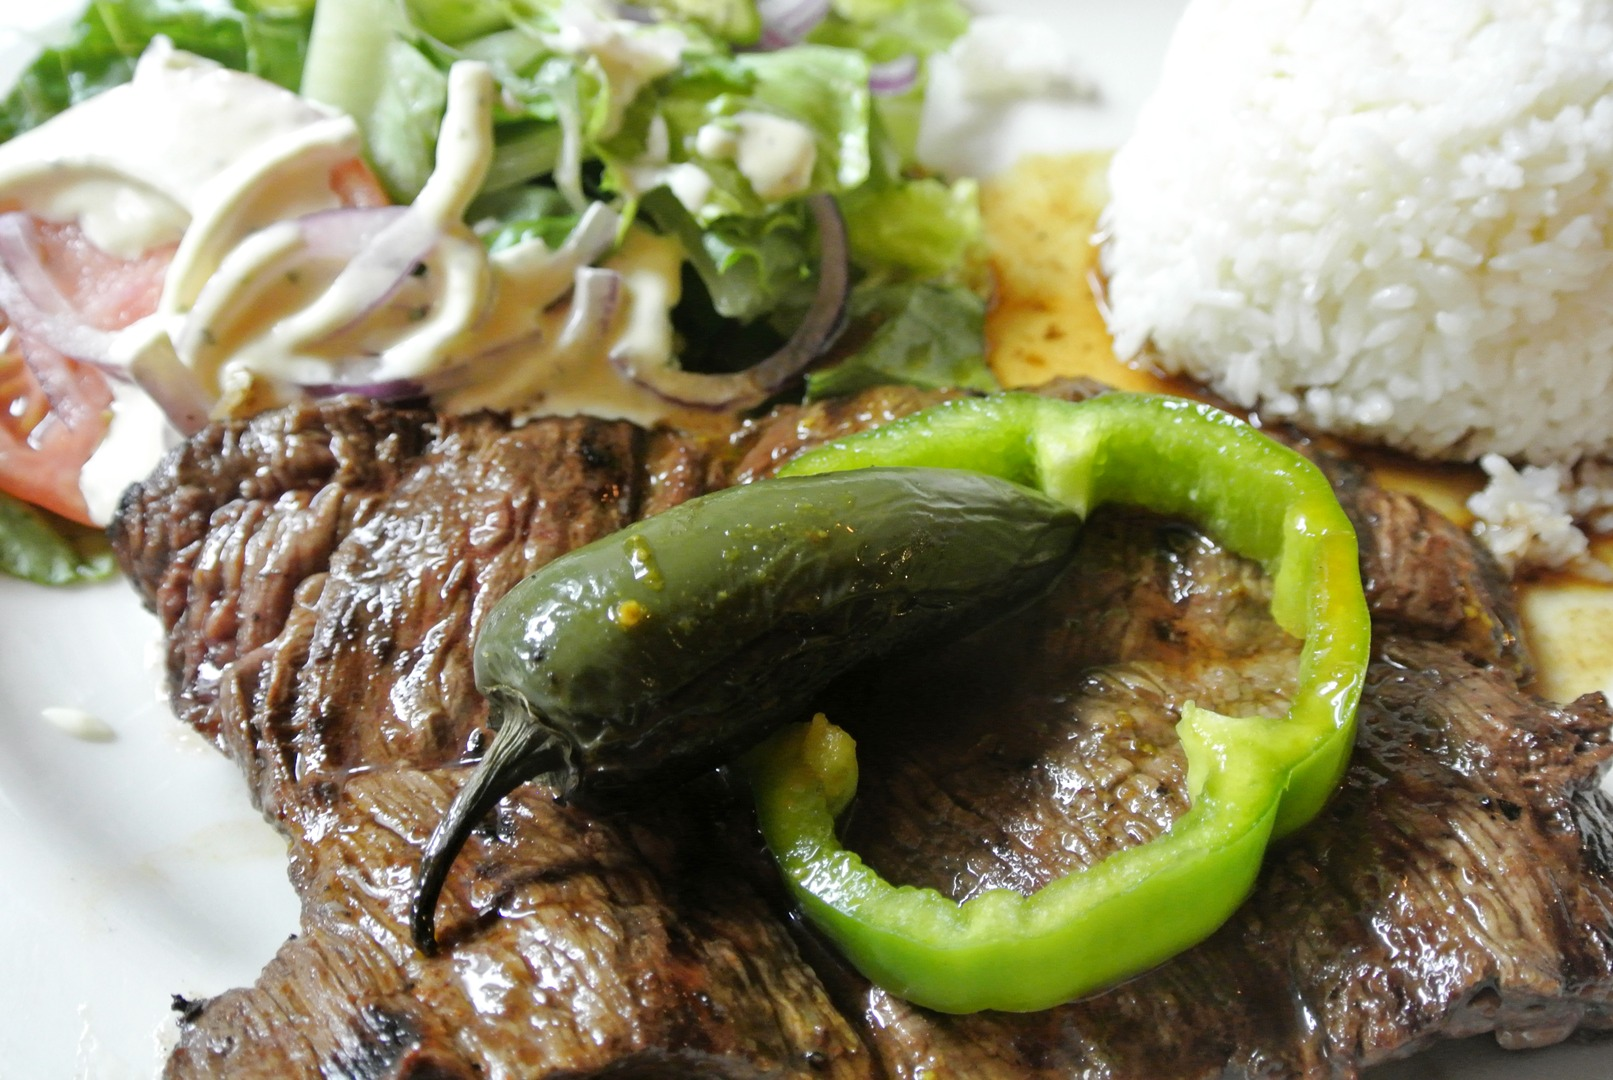 Mesquite grilled skirt steak topped with a jalapeño and green pepper with a salad